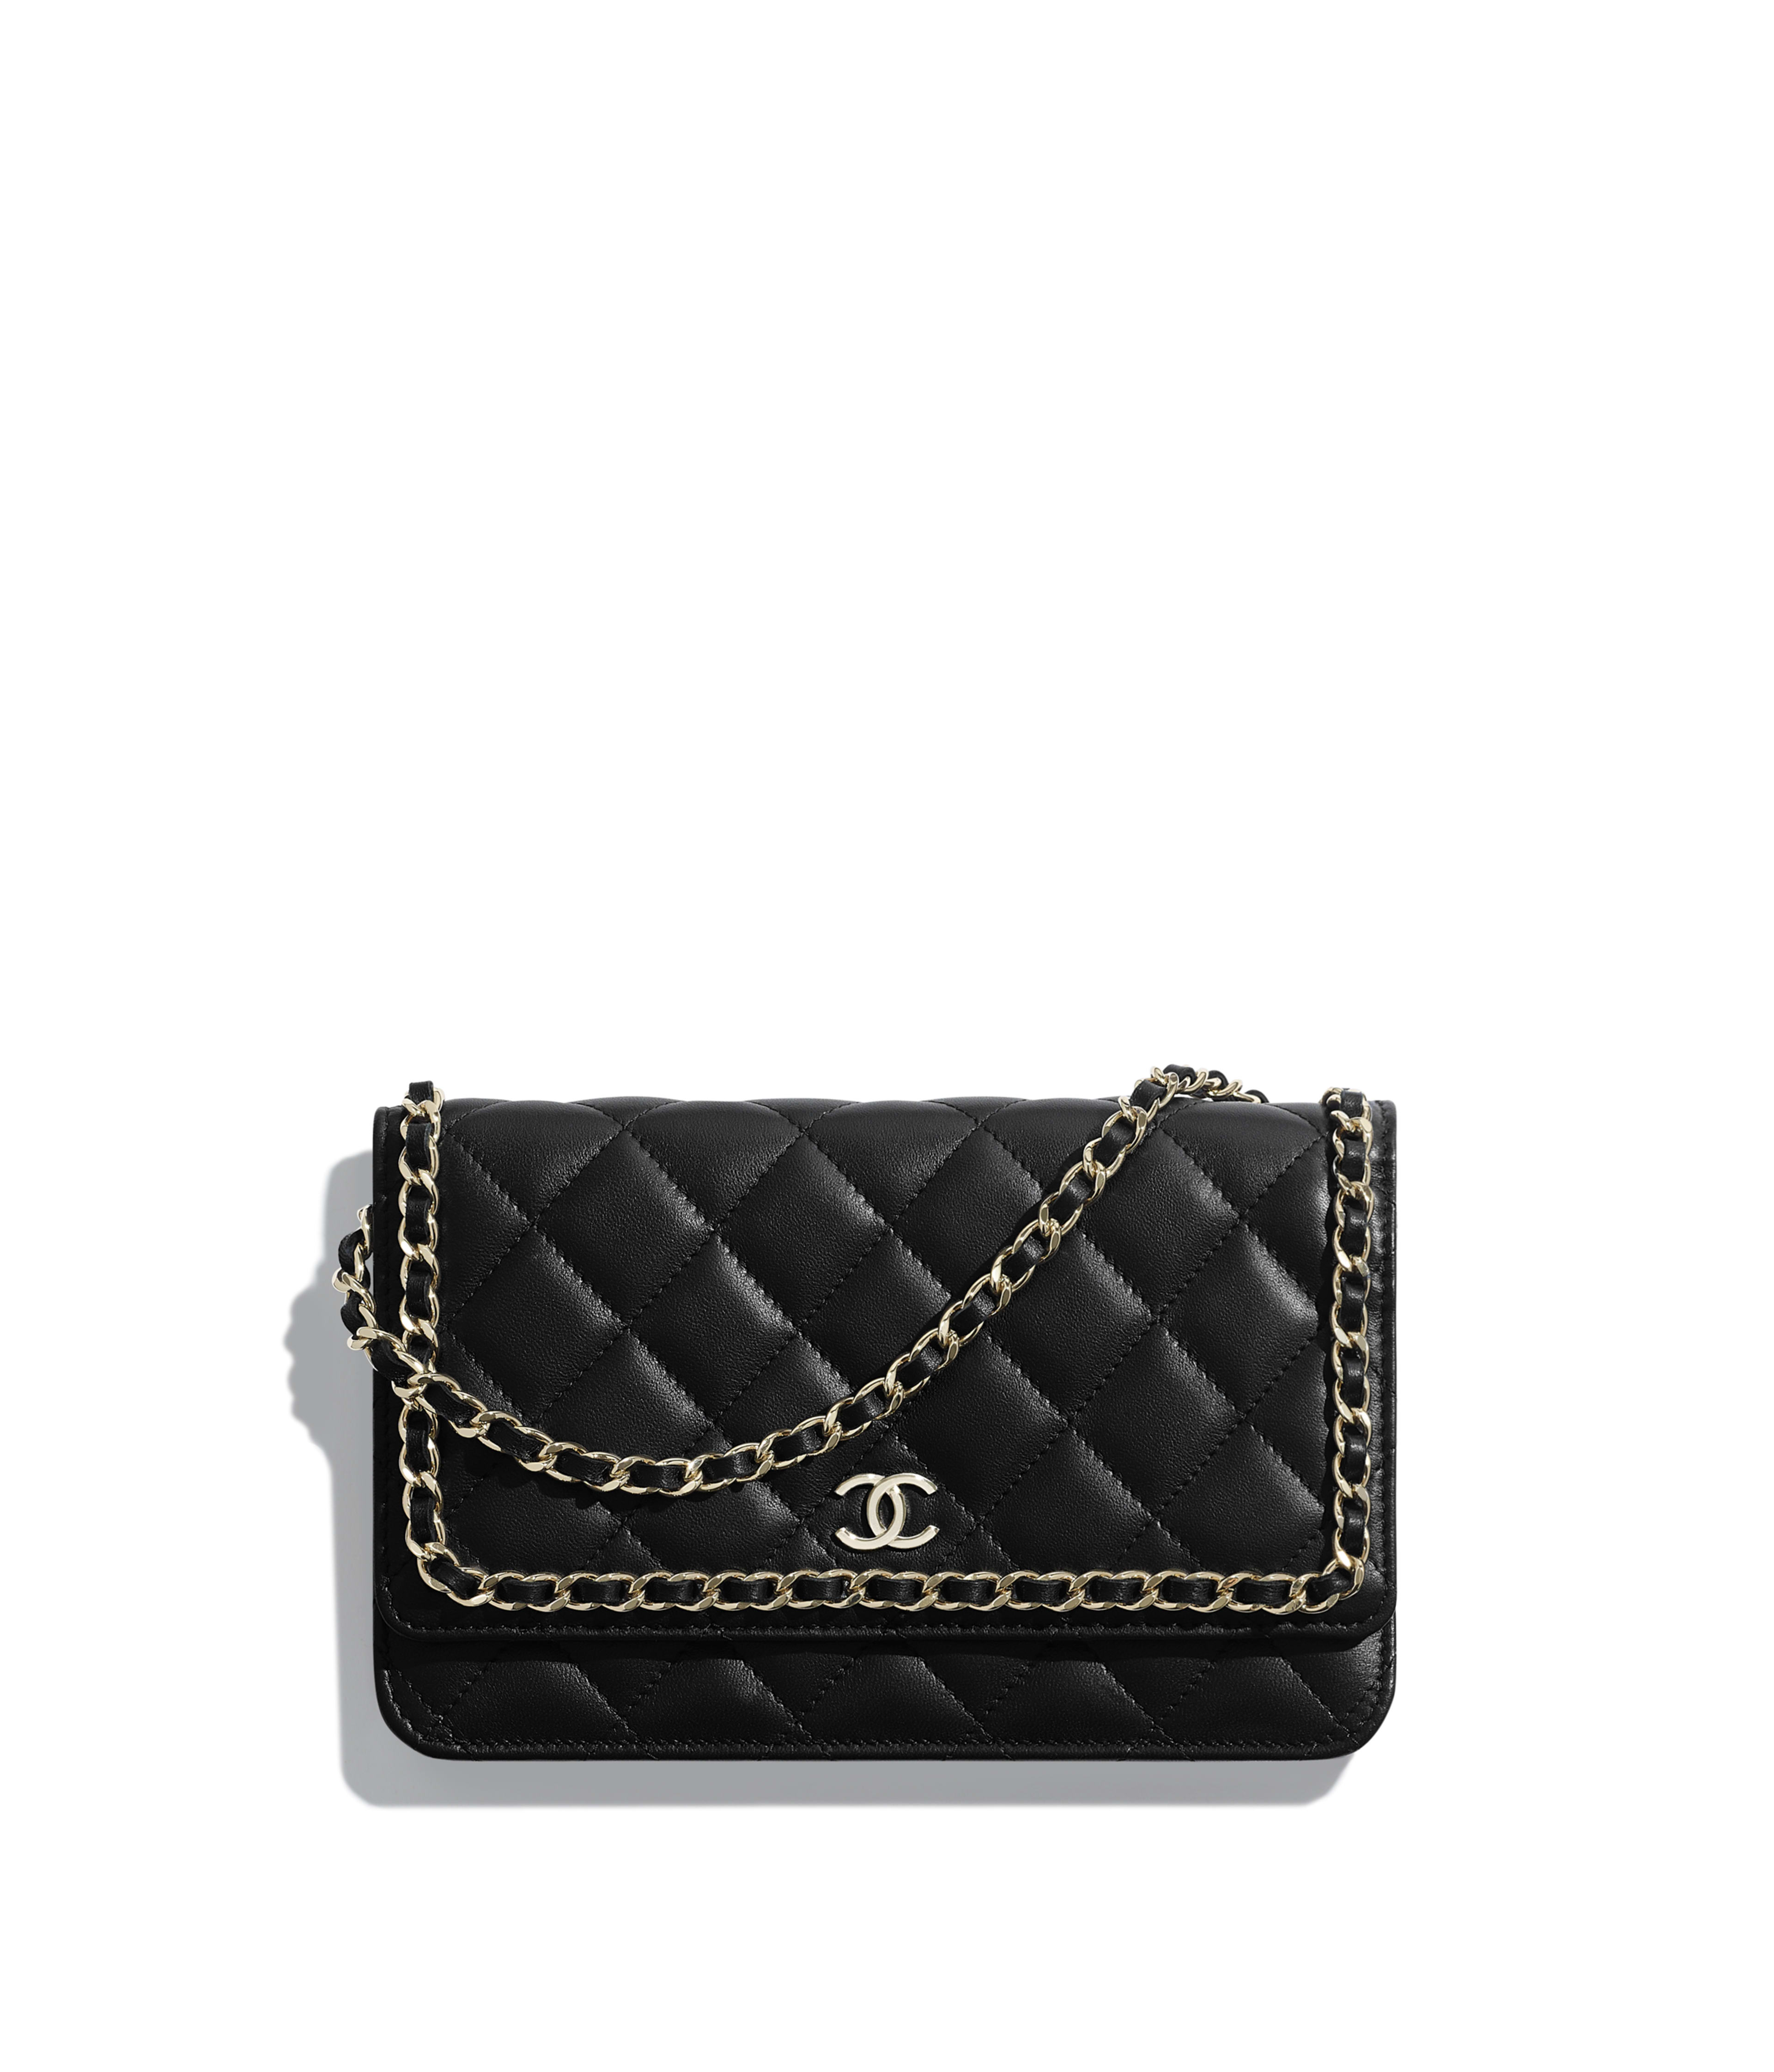 Wallets On Chain Small Leather Goods Chanel